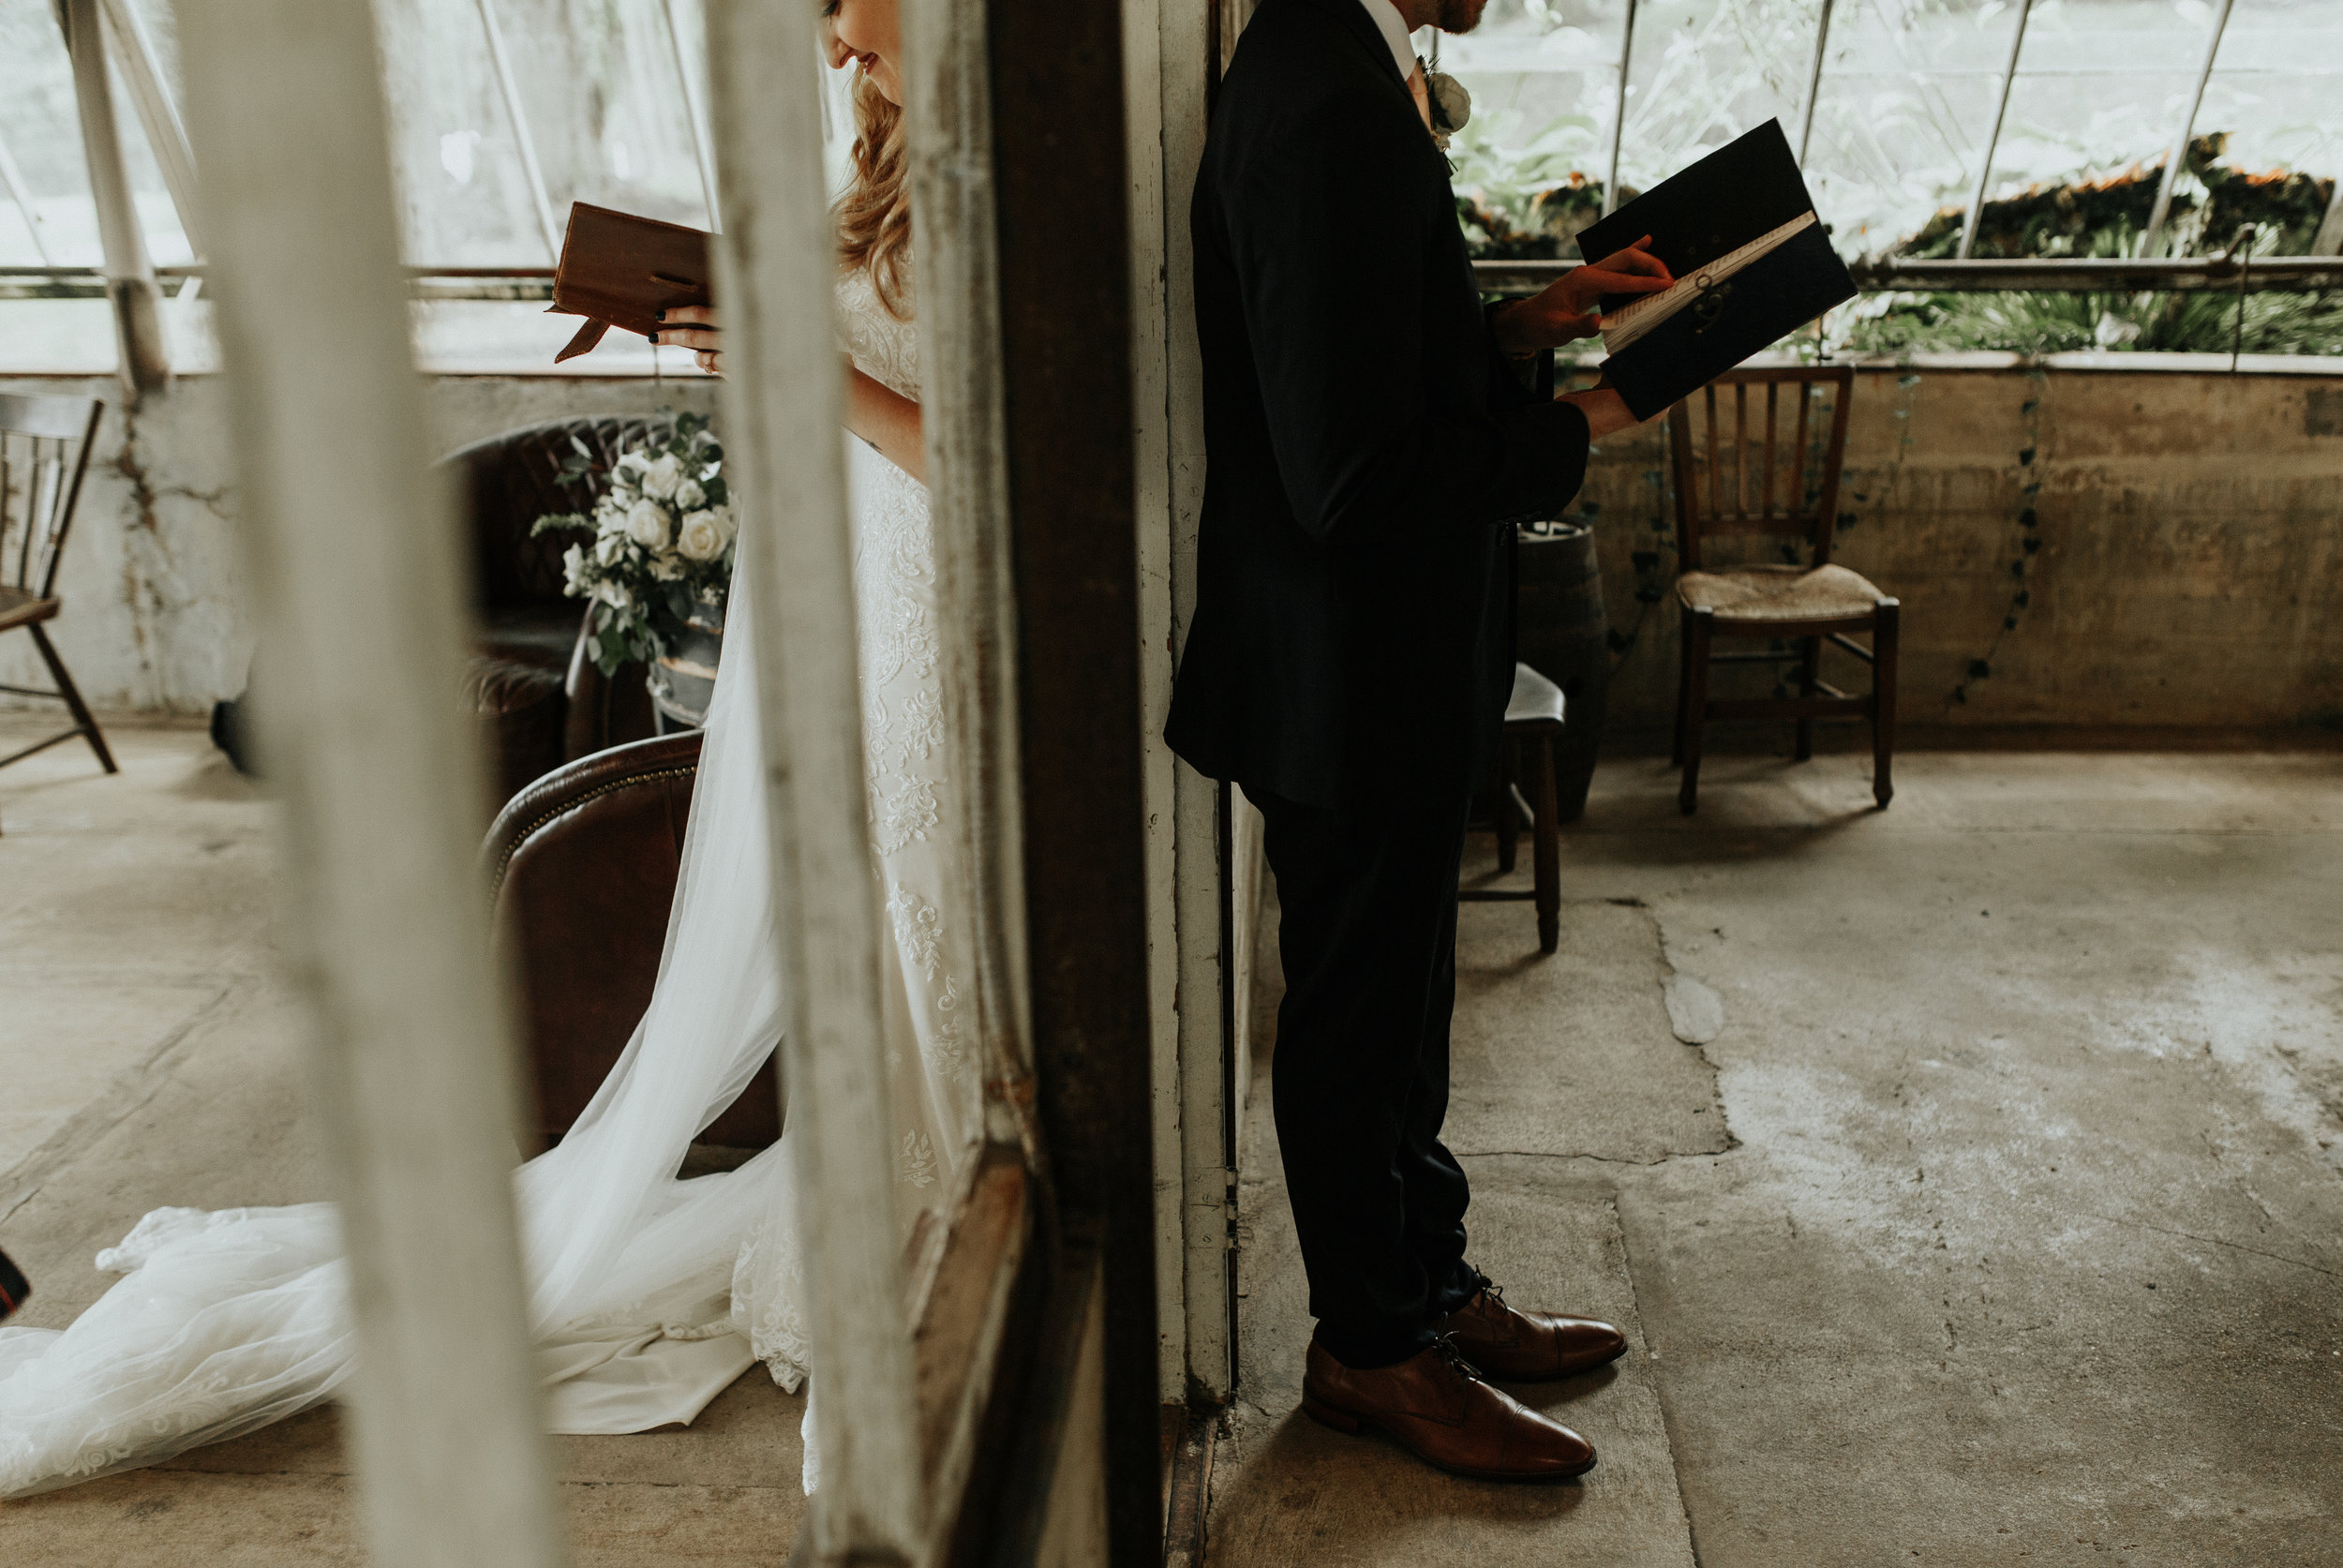 jordanandstephWEDDINGPREVIEW-64.jpg